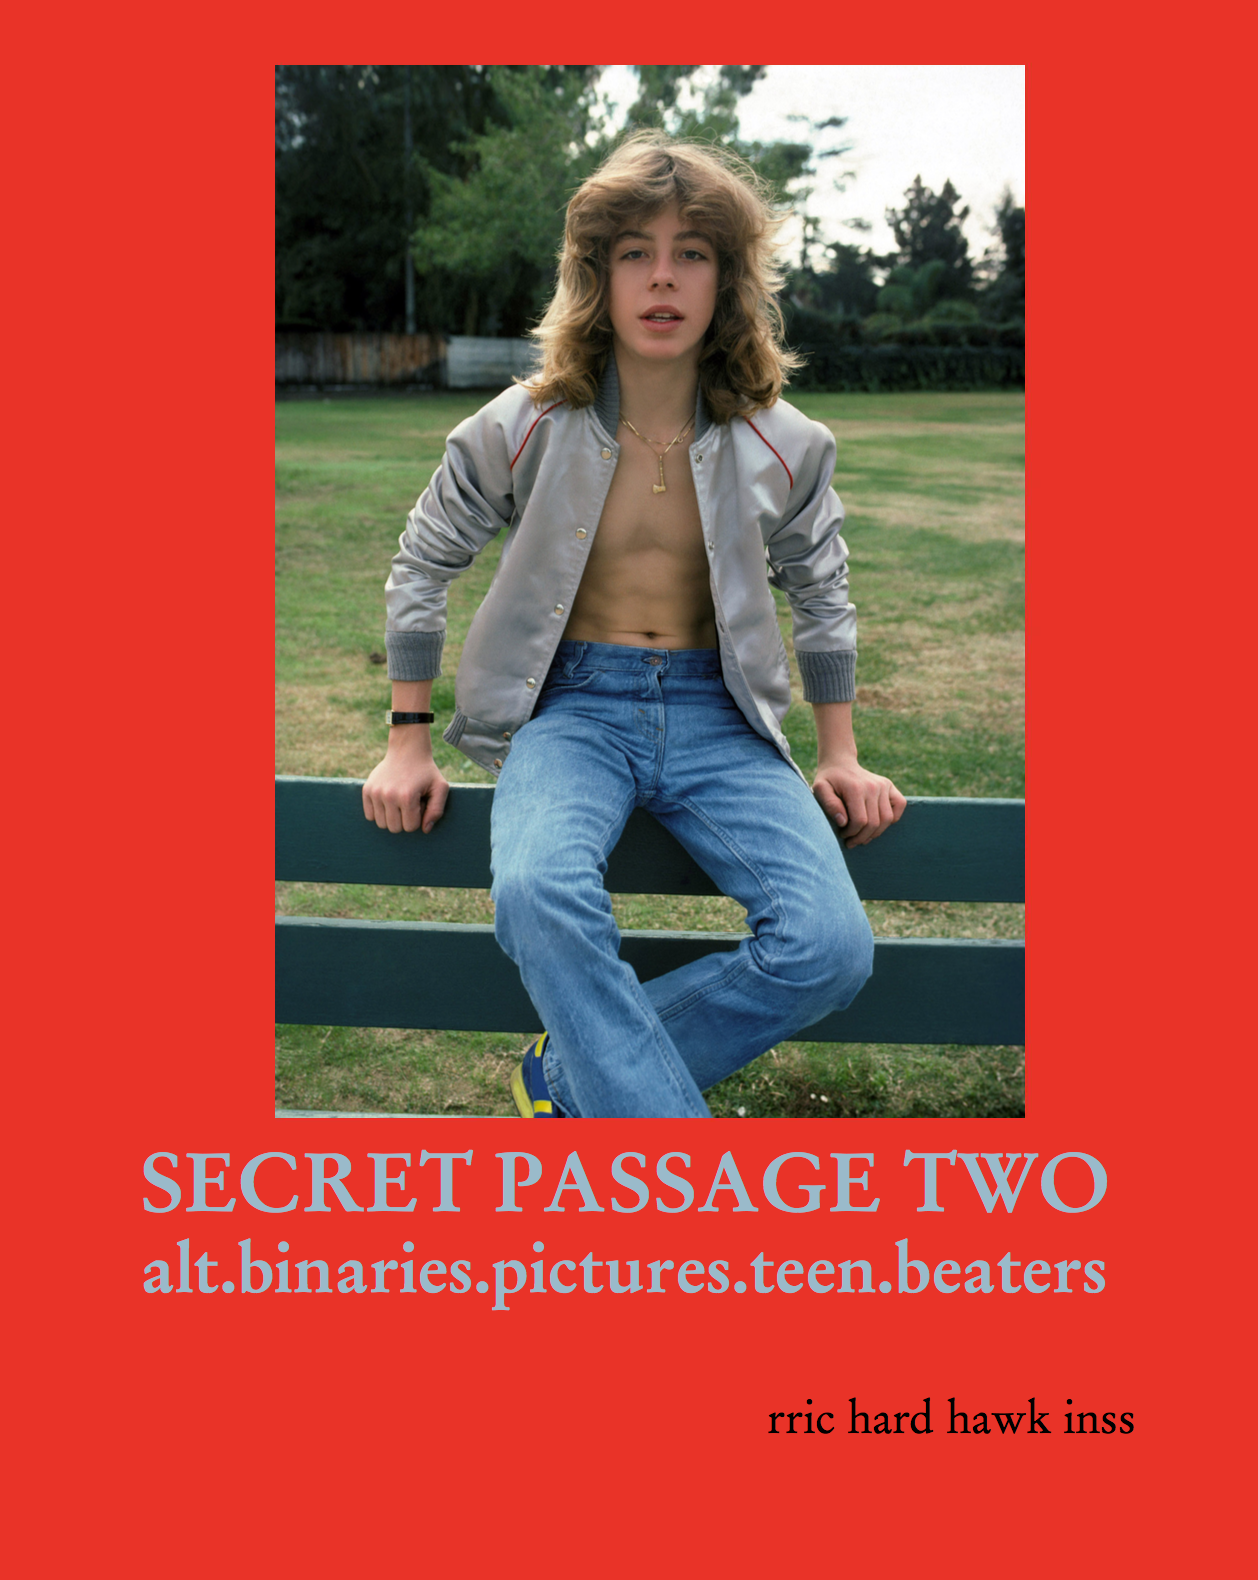 Richard Hawkins – SECRET PASSAGE #TWO: alt.binaries.pictures.teen.beaters